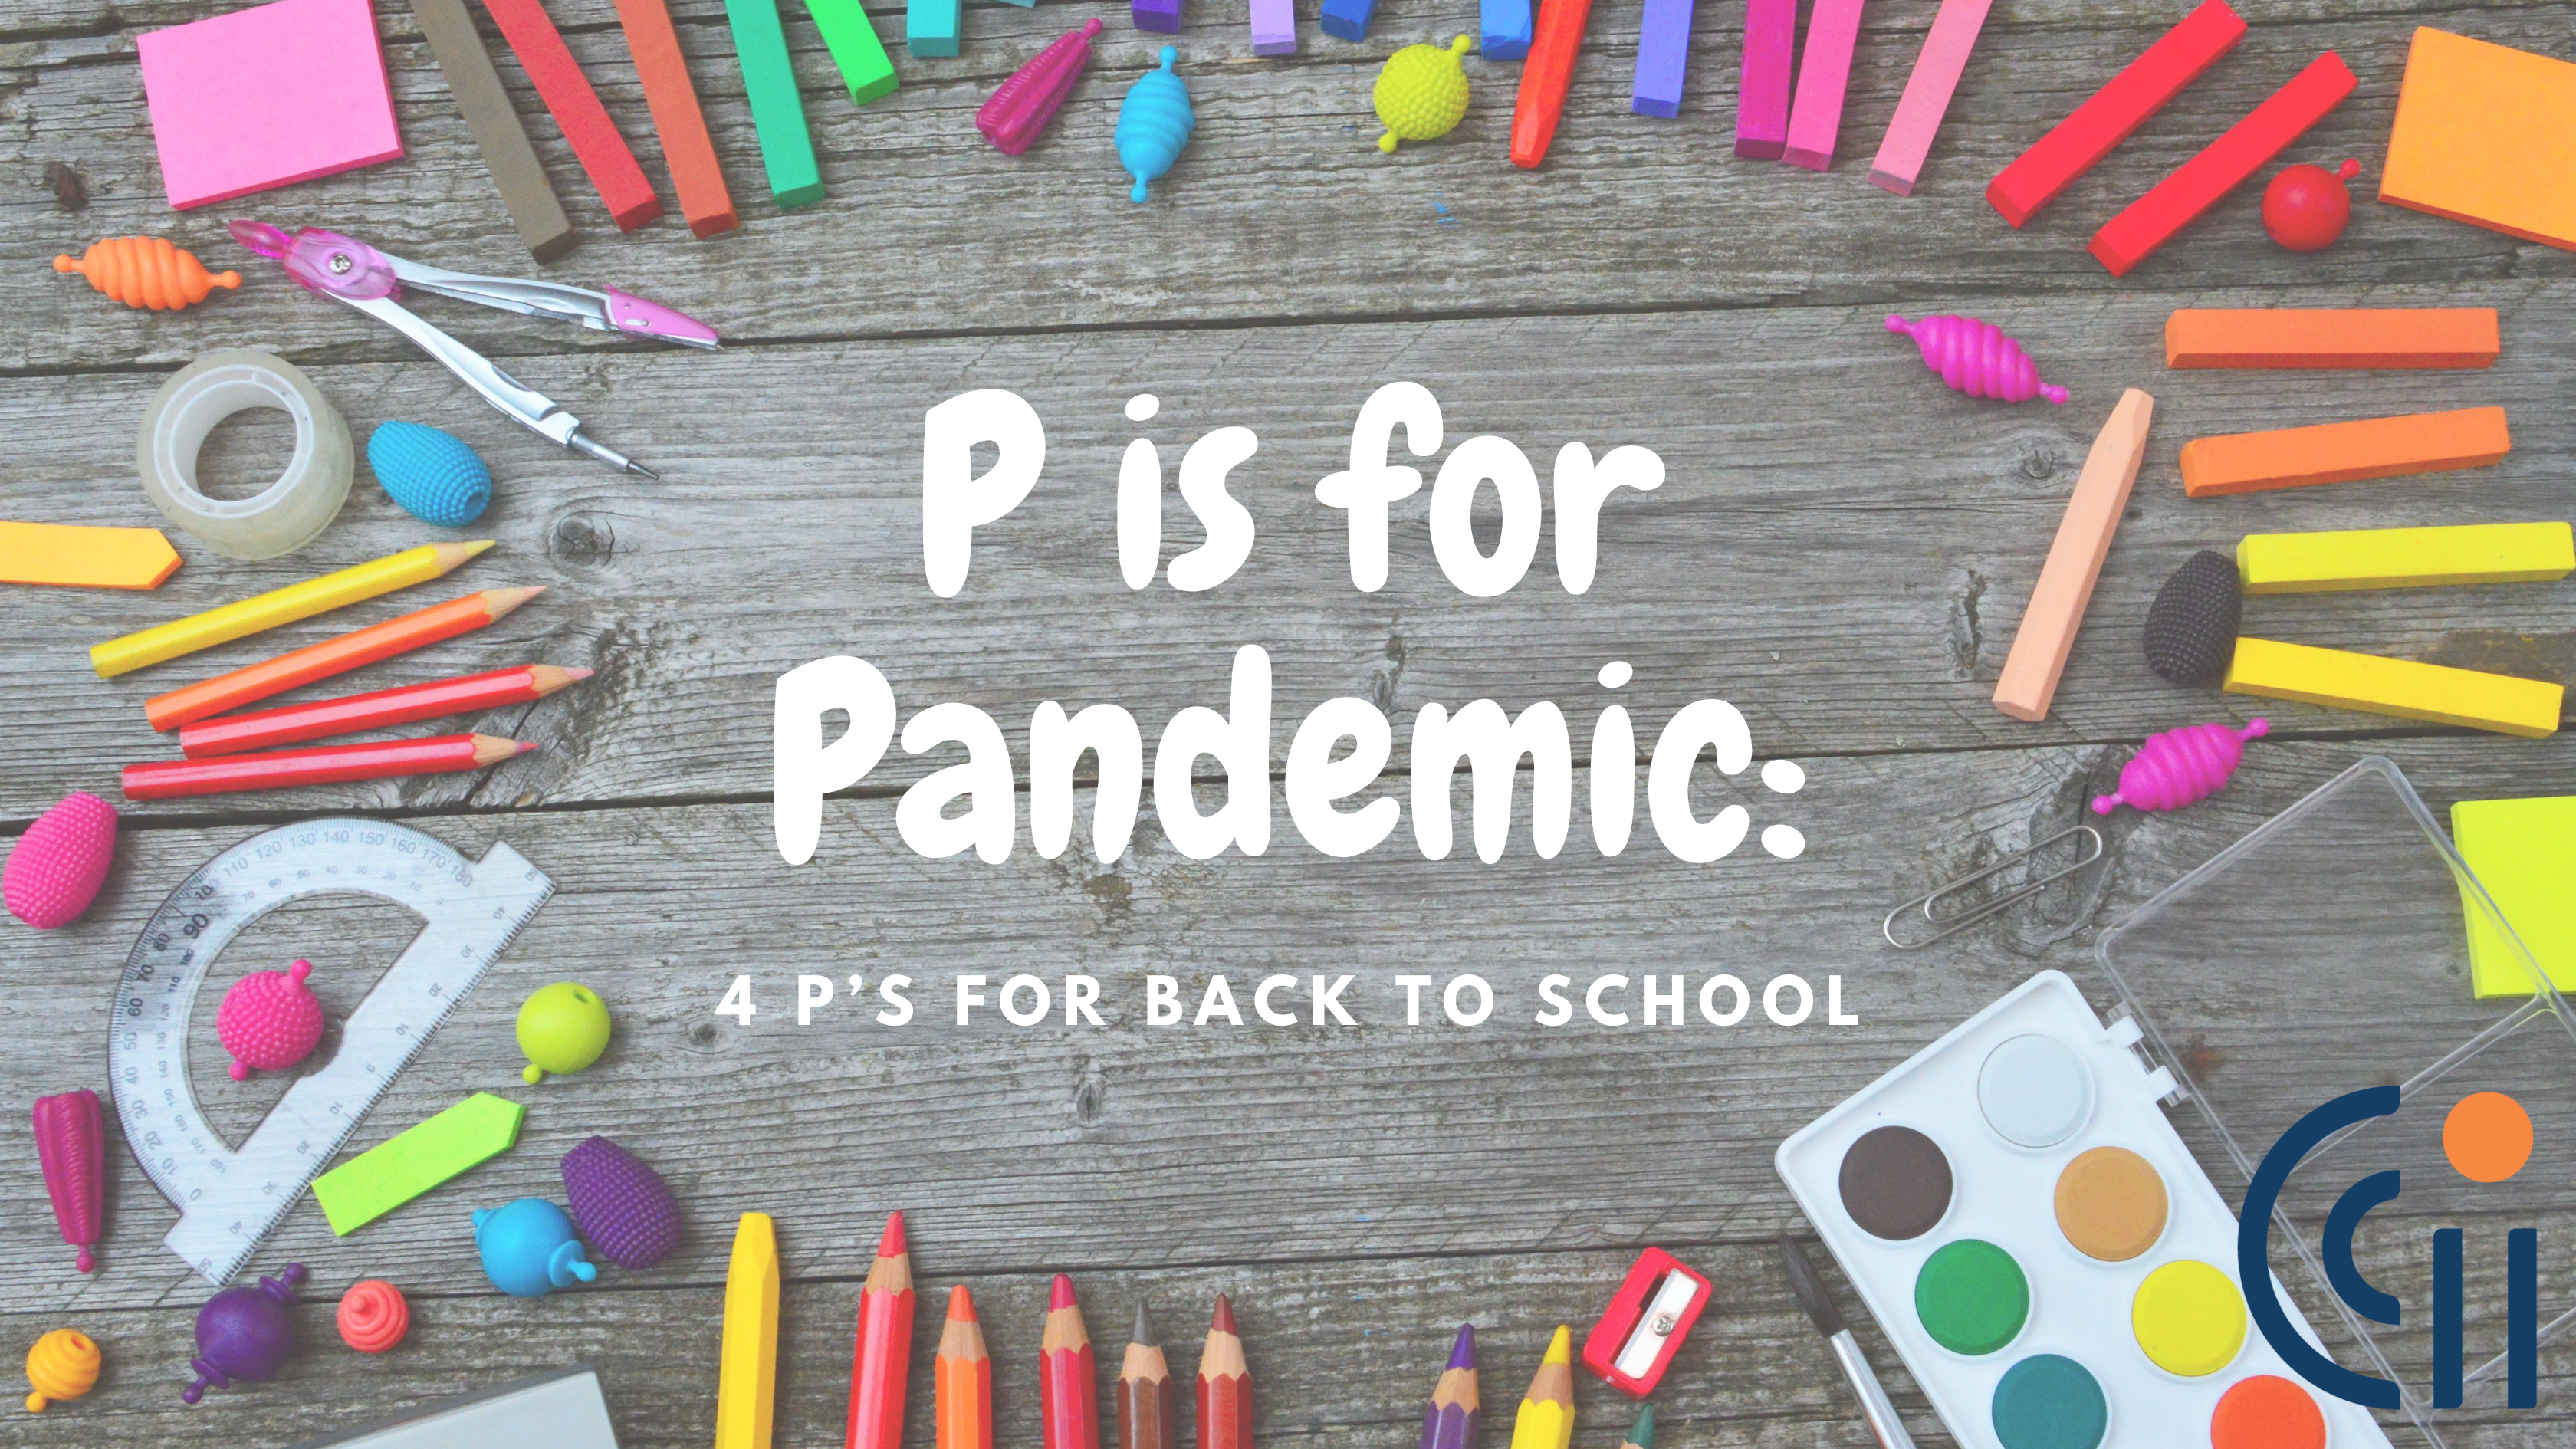 school supplies with text p is for pandemic 4 p's for back to school